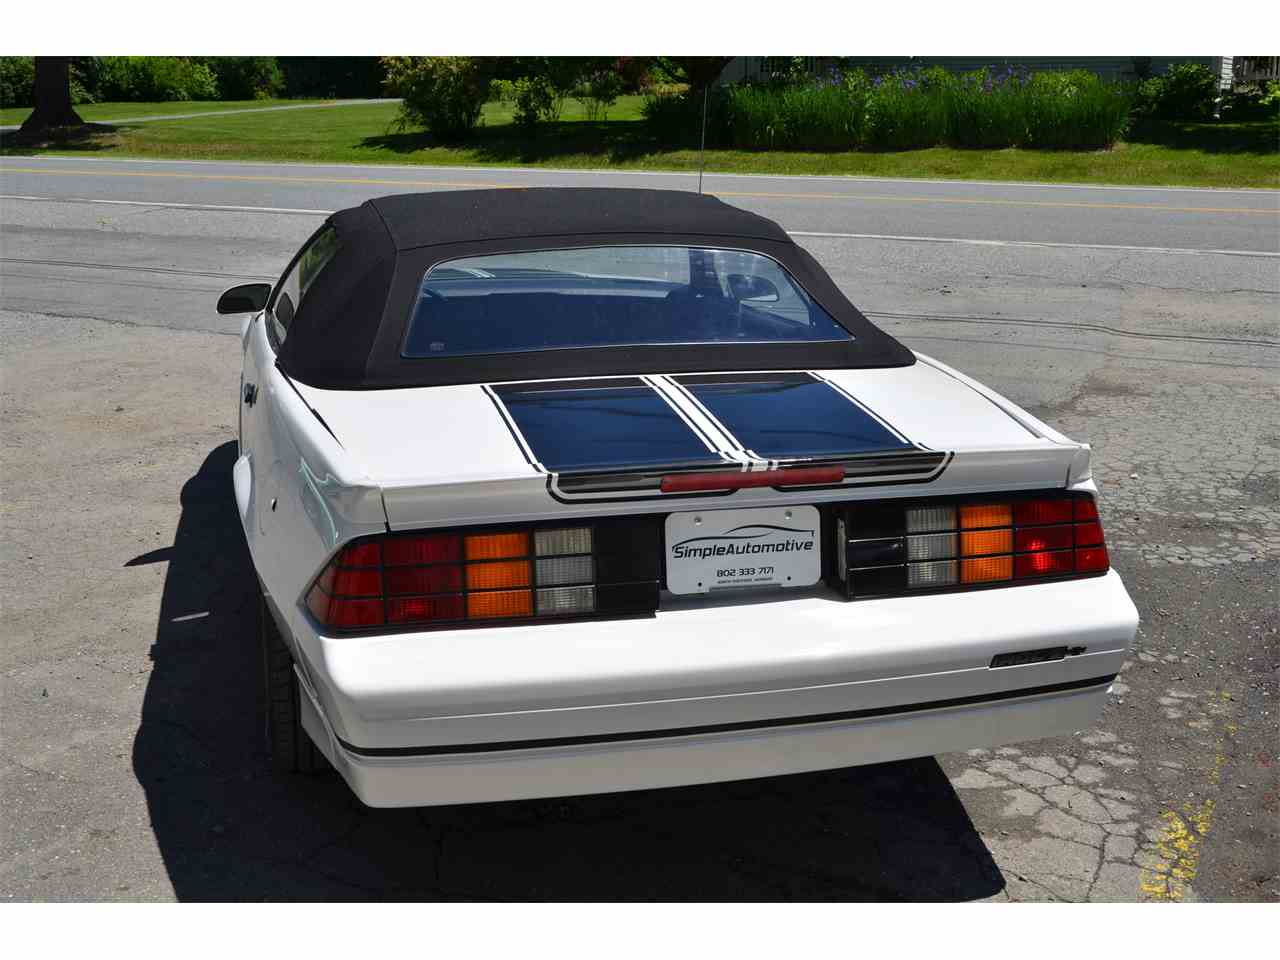 Large Picture of 1989 Chevrolet Camaro IROC-Z - $14,000.00 - LBGQ